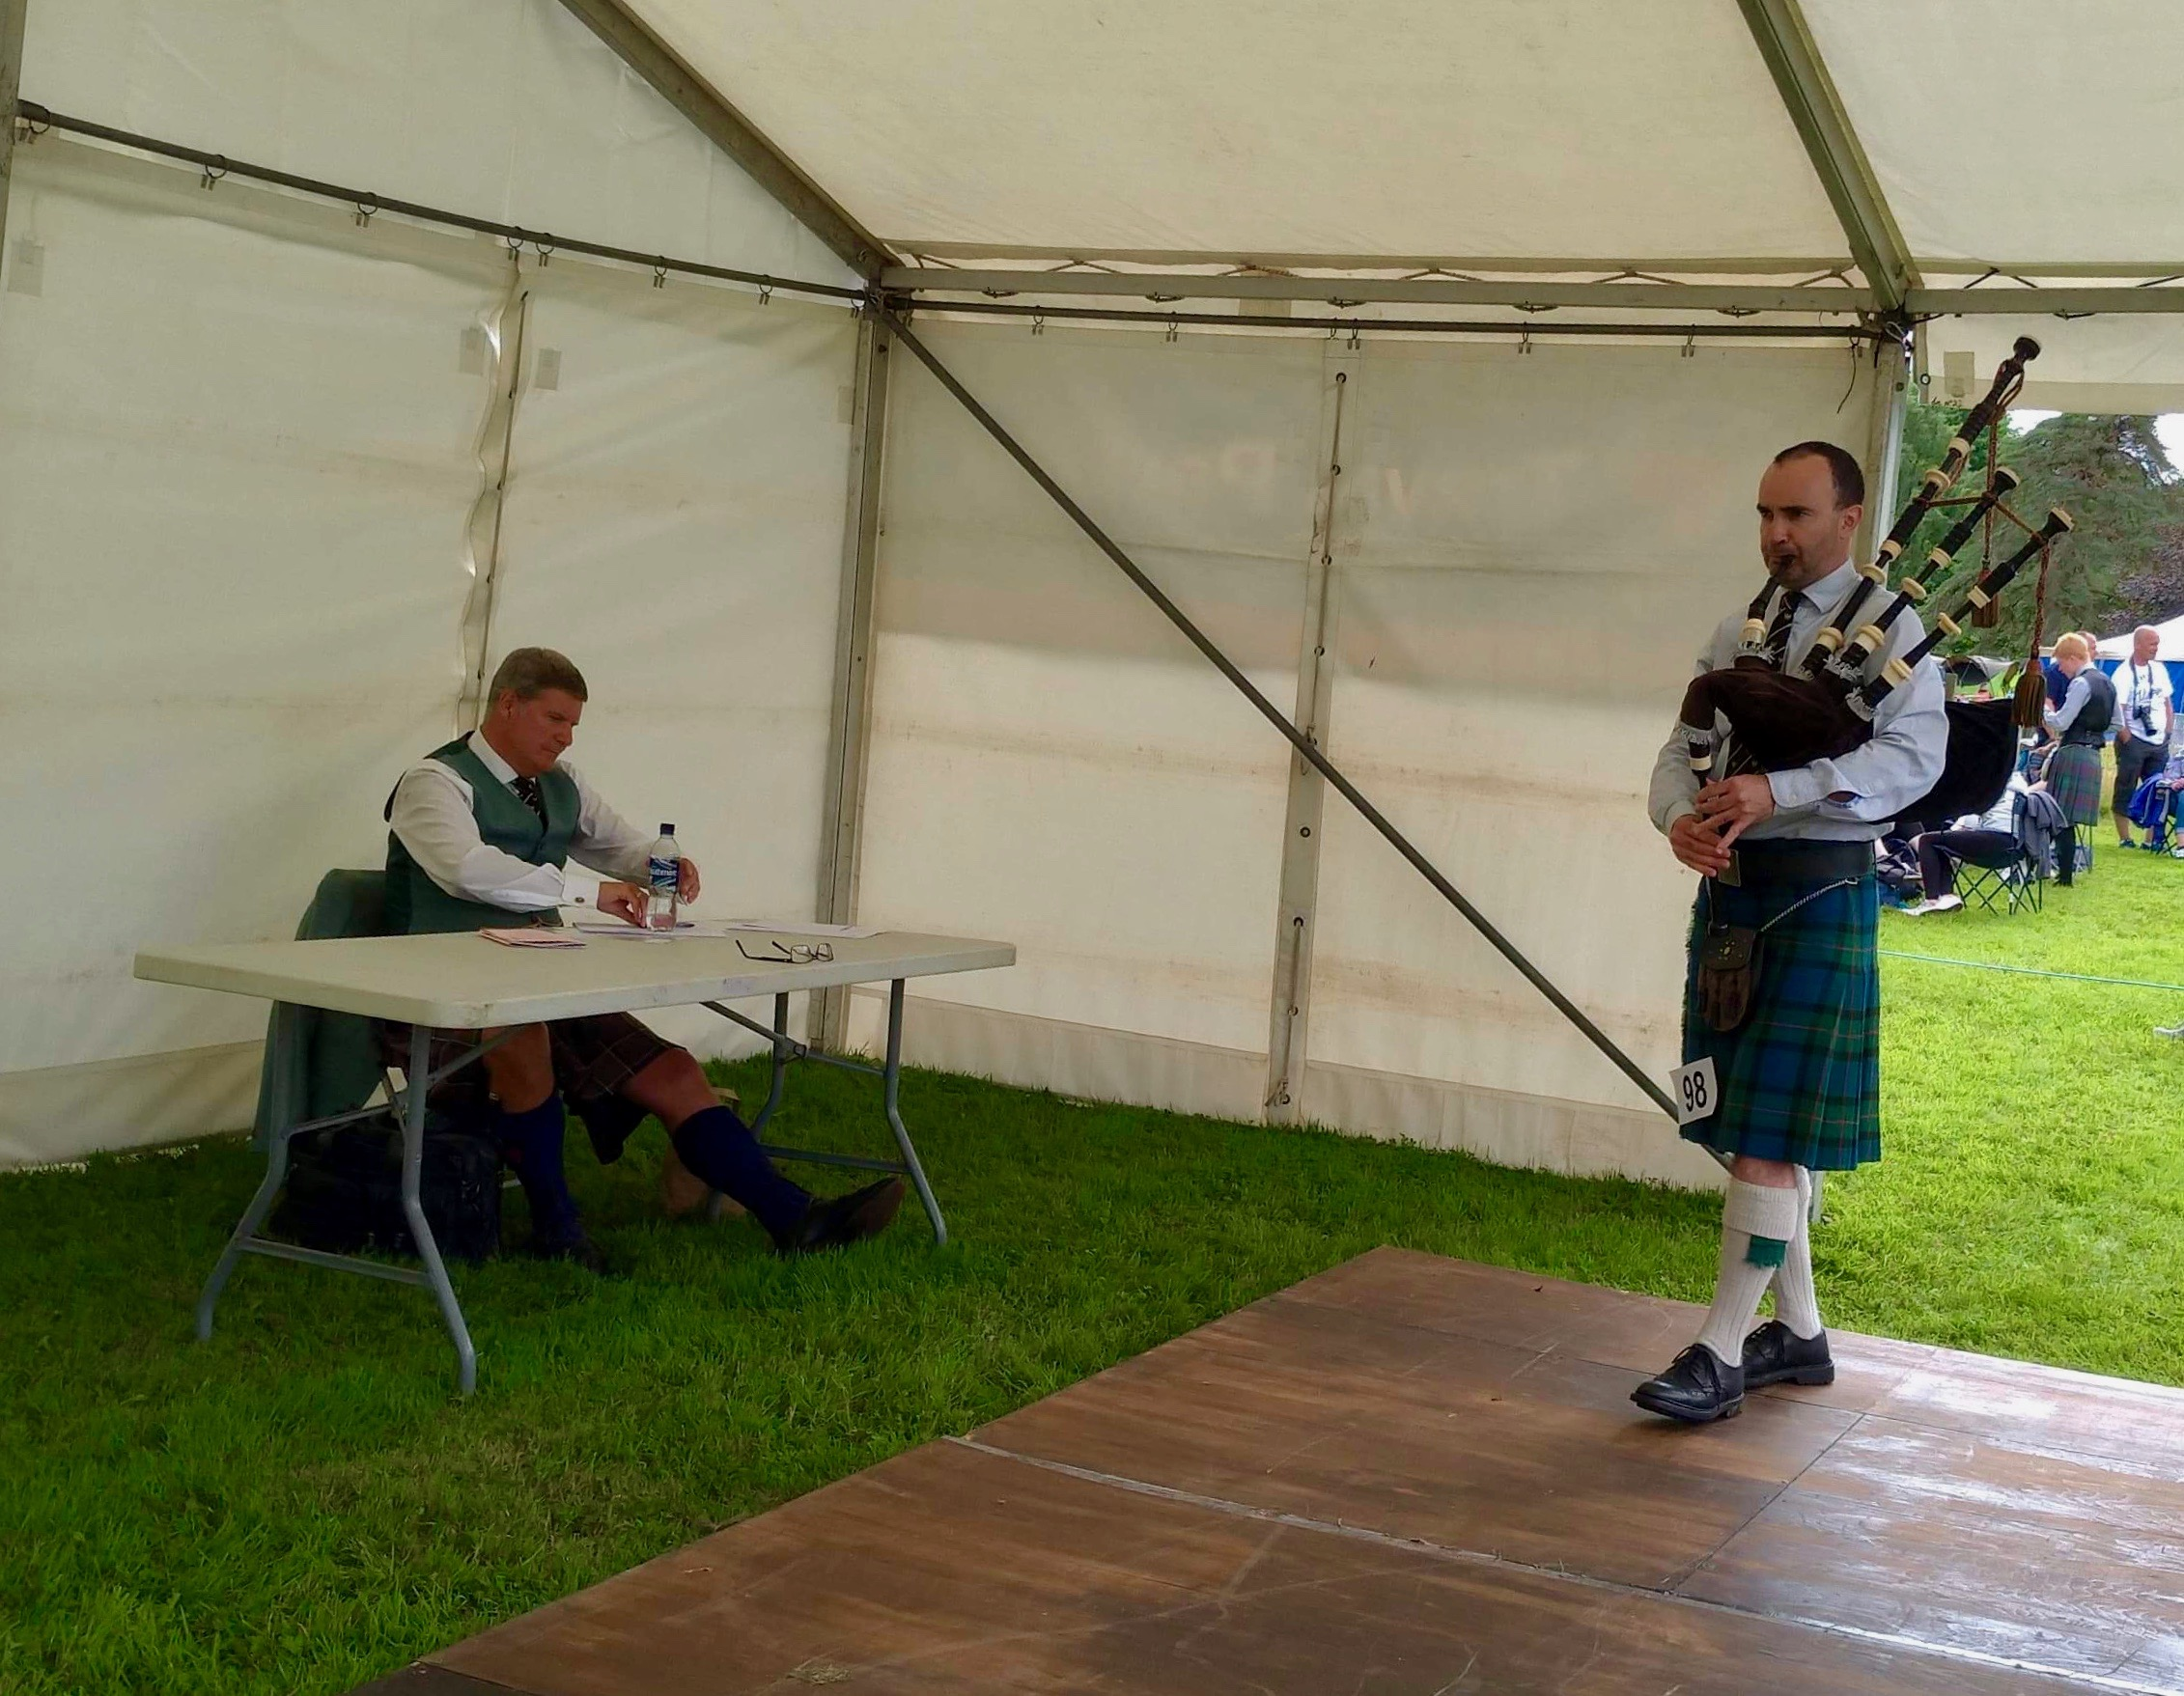 More judging at Inveraray. Gordon Hislop playing in the grade 1 amateur clasp competition. July 2018